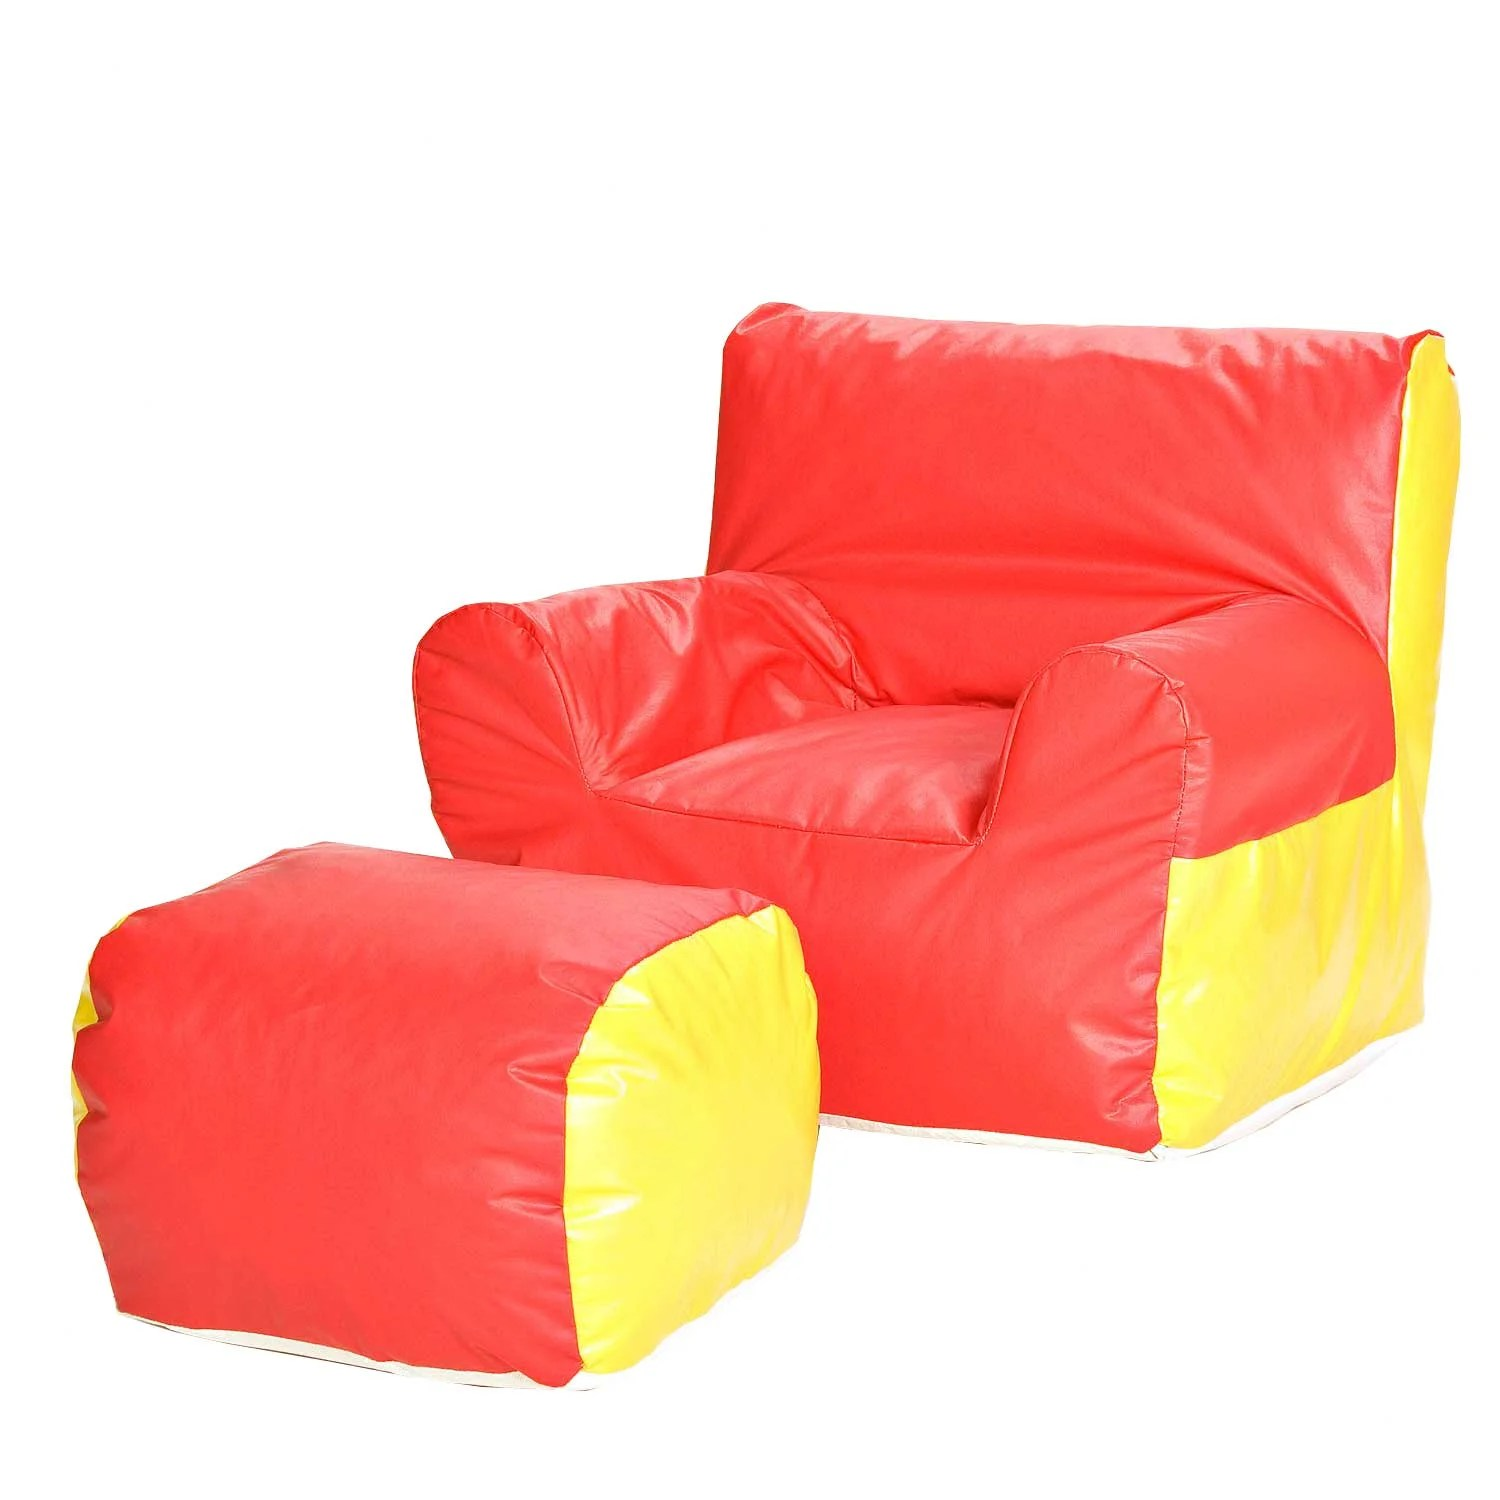 soft chairs for toddlers ab chair exercises foamnasium e kids club and ottoman reviews